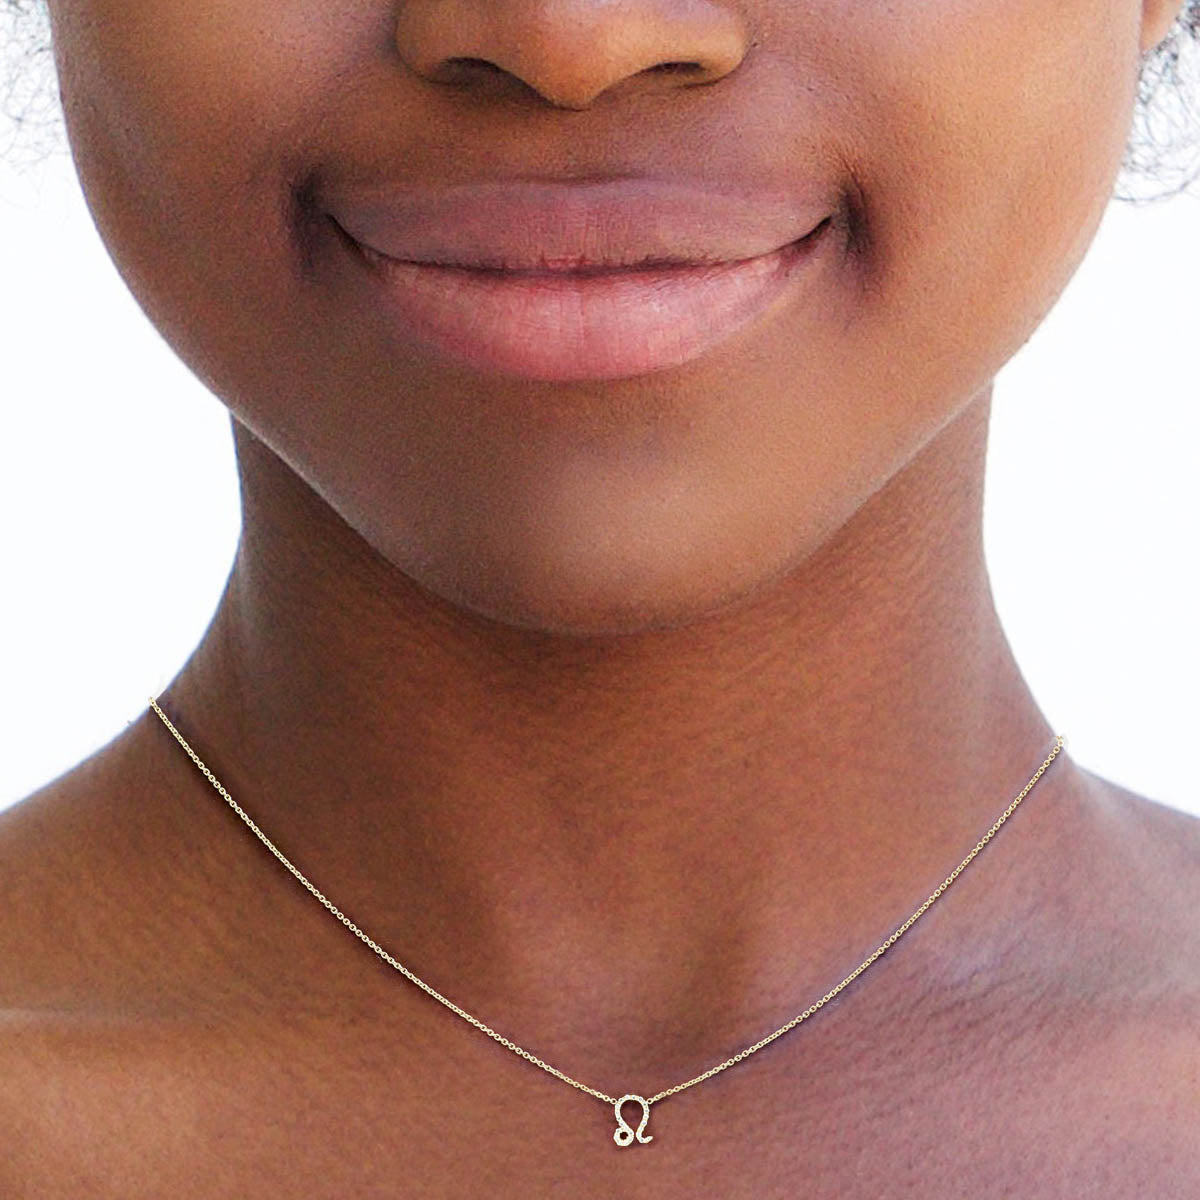 Image of Leo Diamond Zodiac Necklace on Woman's Neck